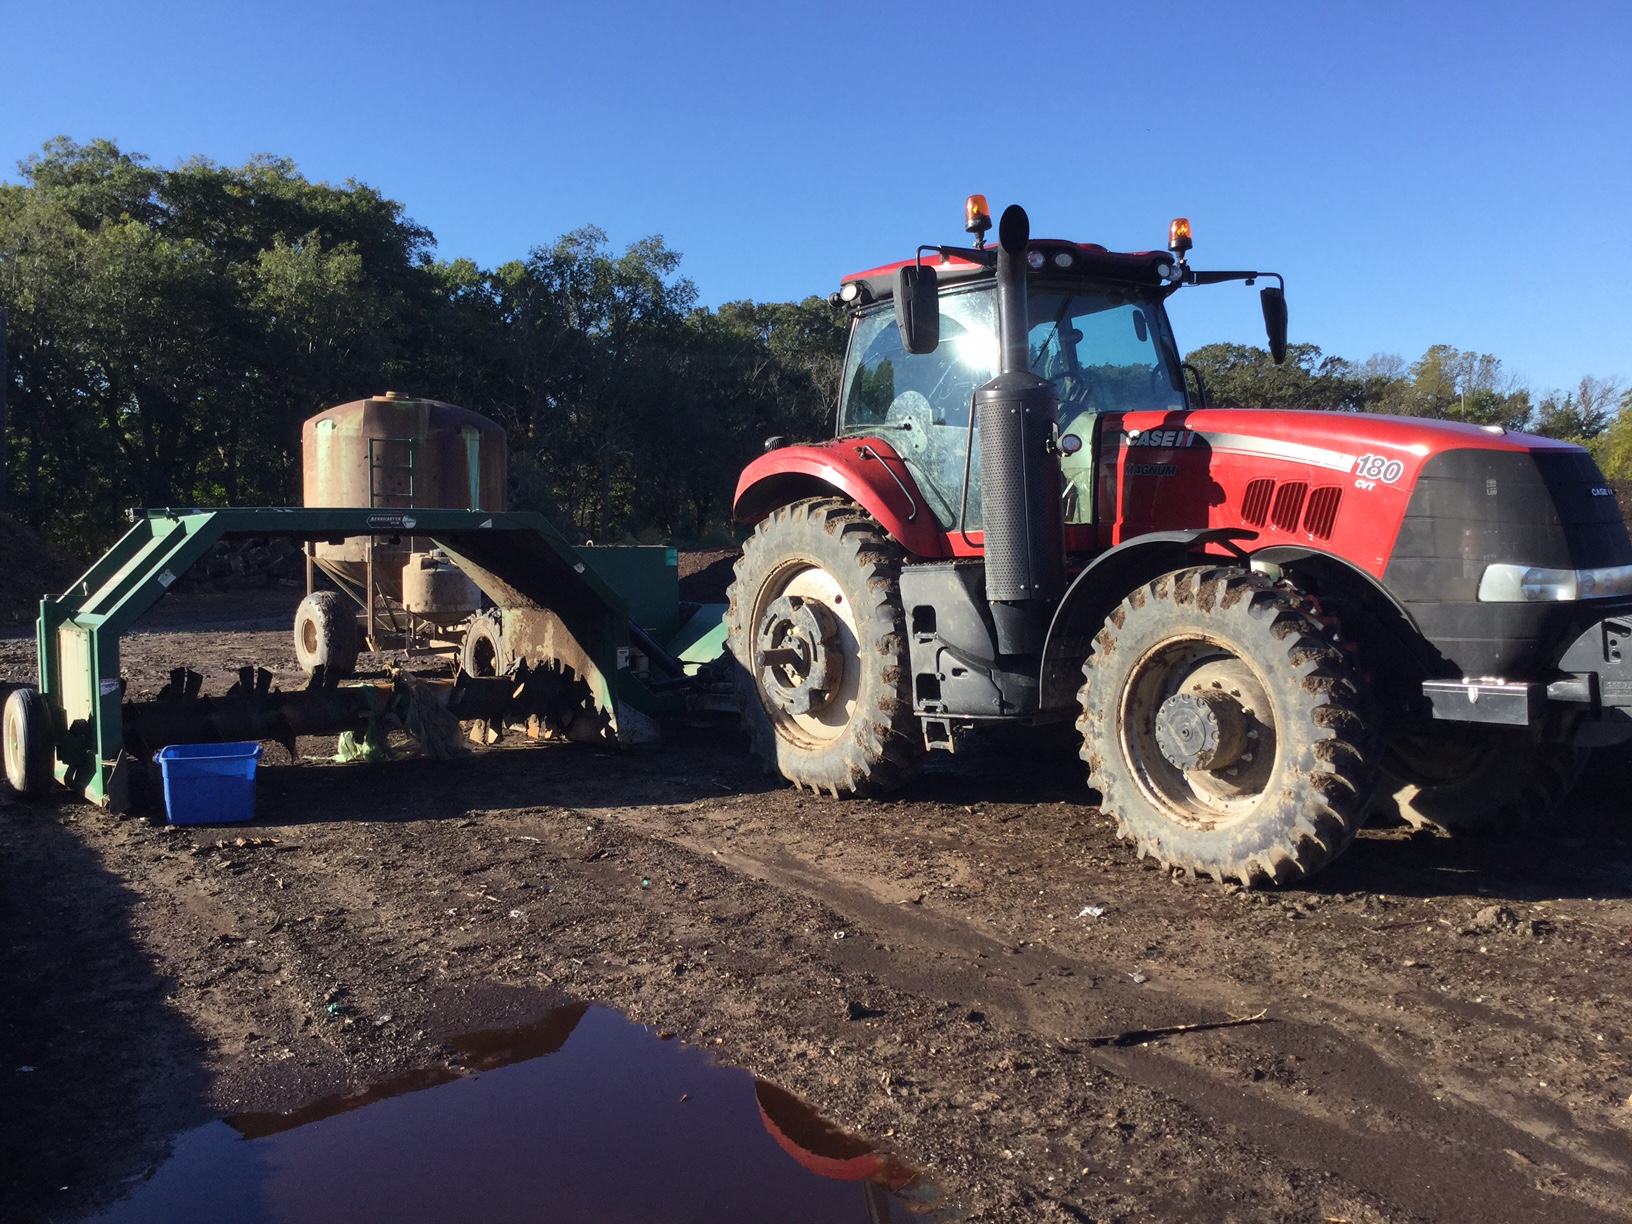 Tractor, Turner, and Water Wagon. This lets us turn about 300 yards of compost in just a few minutes. The water wagon holds 1700 gallons of water that spray from nozzles just above the turner blades so that the compost is evenly moistened when necessary..